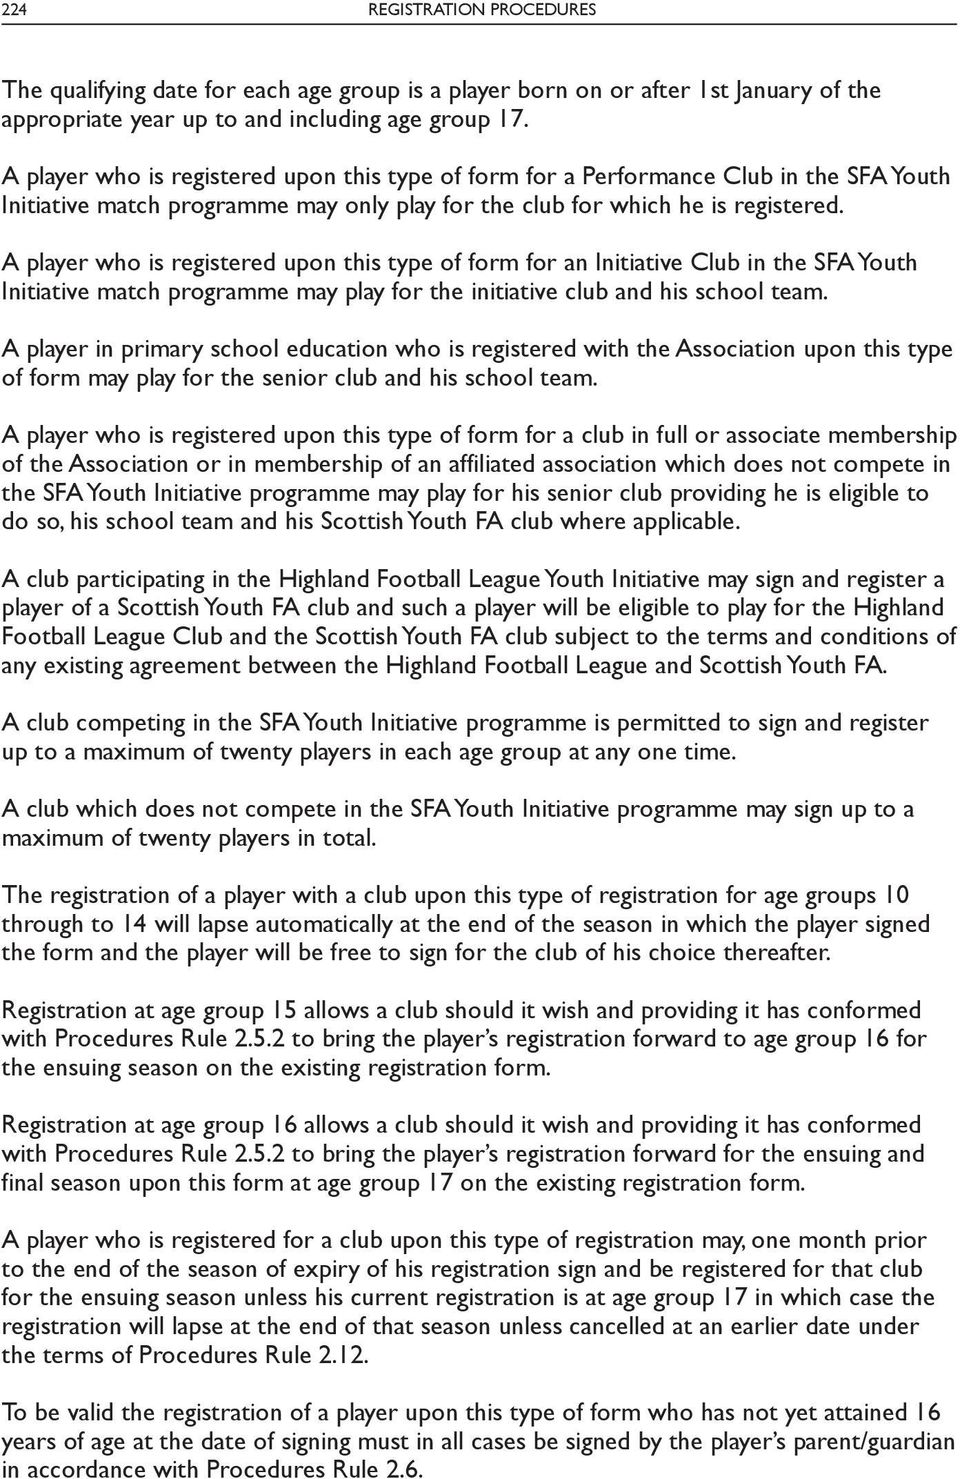 A player who is registered upon this type of form for an Initiative Club in the SFA Youth Initiative match programme may play for the initiative club and his school team.